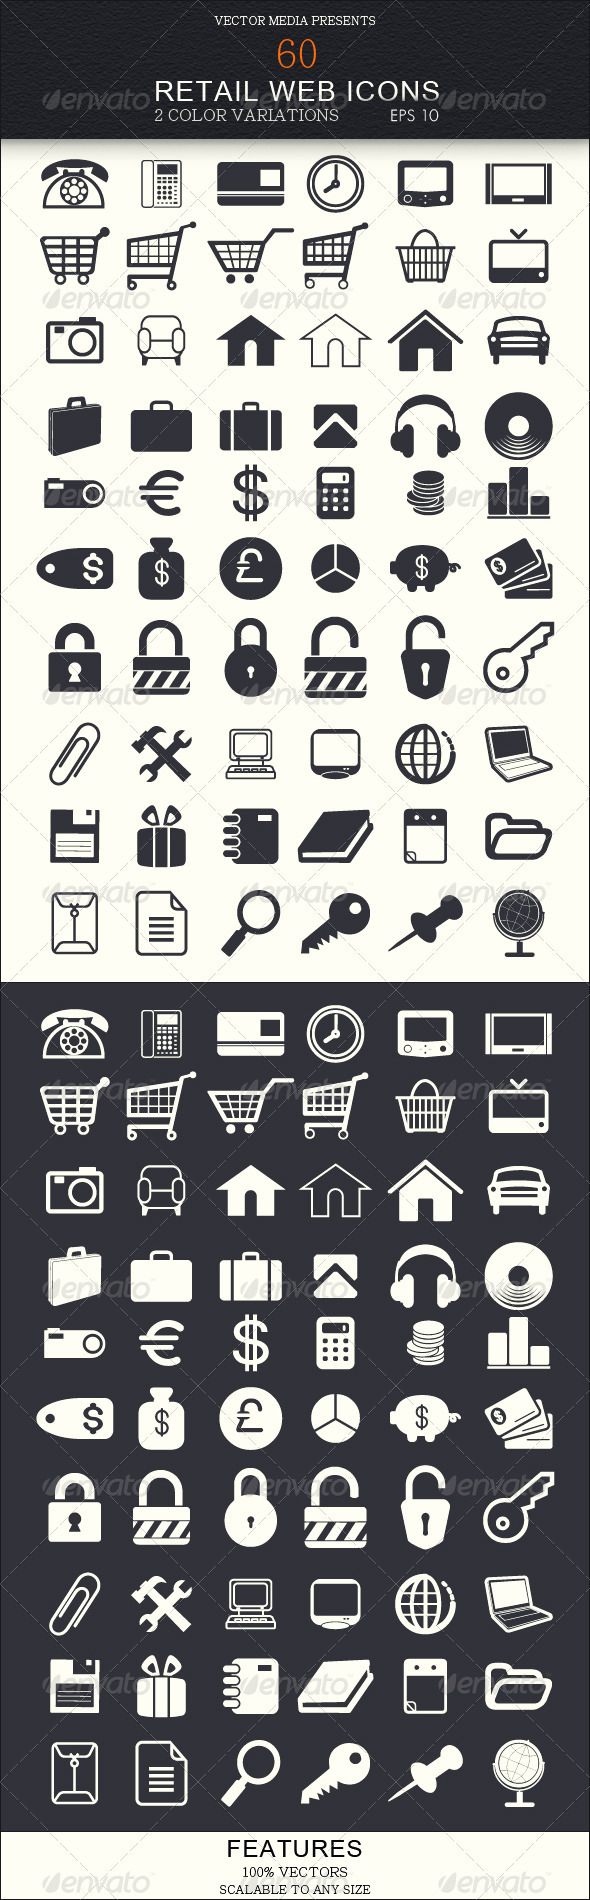 60 Retail Web Icons